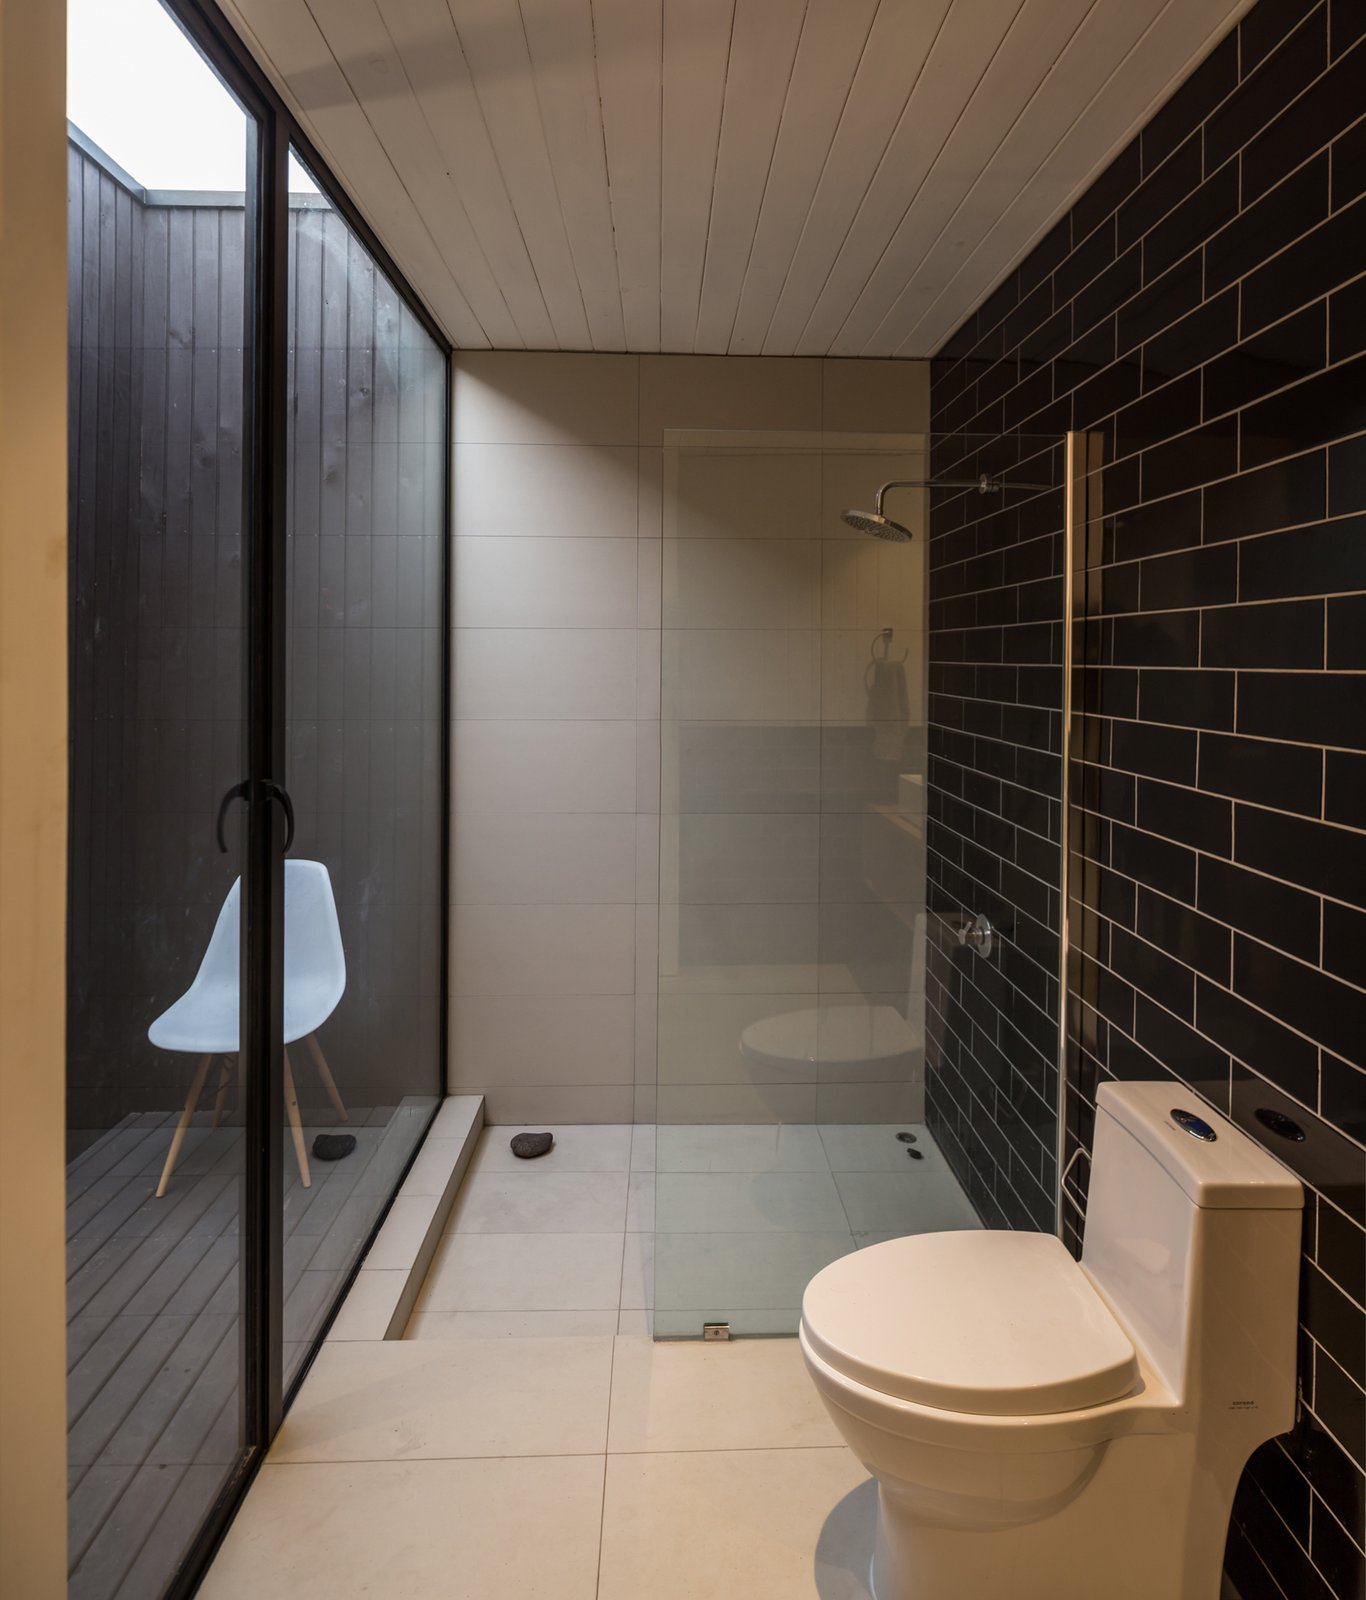 """""""The water waste from the shower and the kitchen irrigate the interior garden,"""" LLaumett says. """"The toilets have their own patio, which provides them with ventilation and natural light."""" Black Marazzi tiles cover the wall.  Unplugged by Kelly Dawson"""